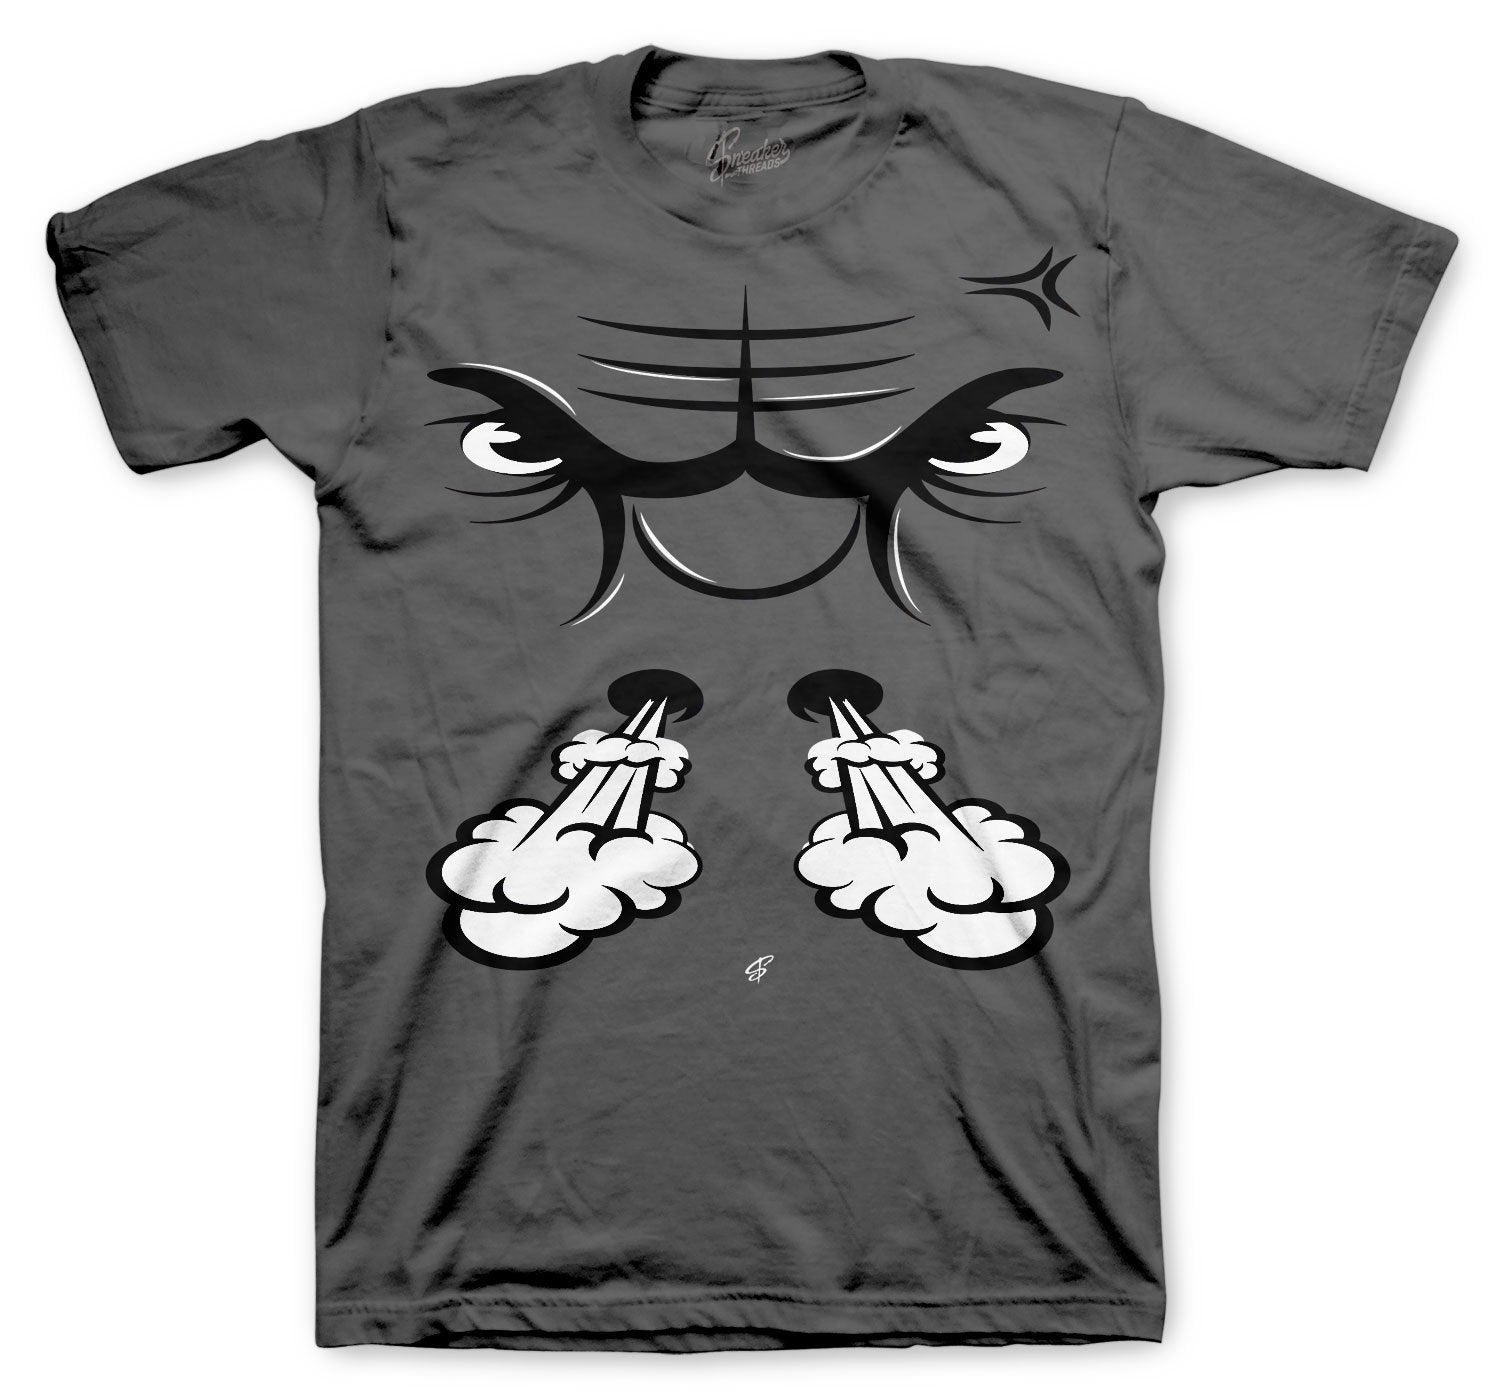 Jordan 4 black cat sneaker collection matching mens t shirts